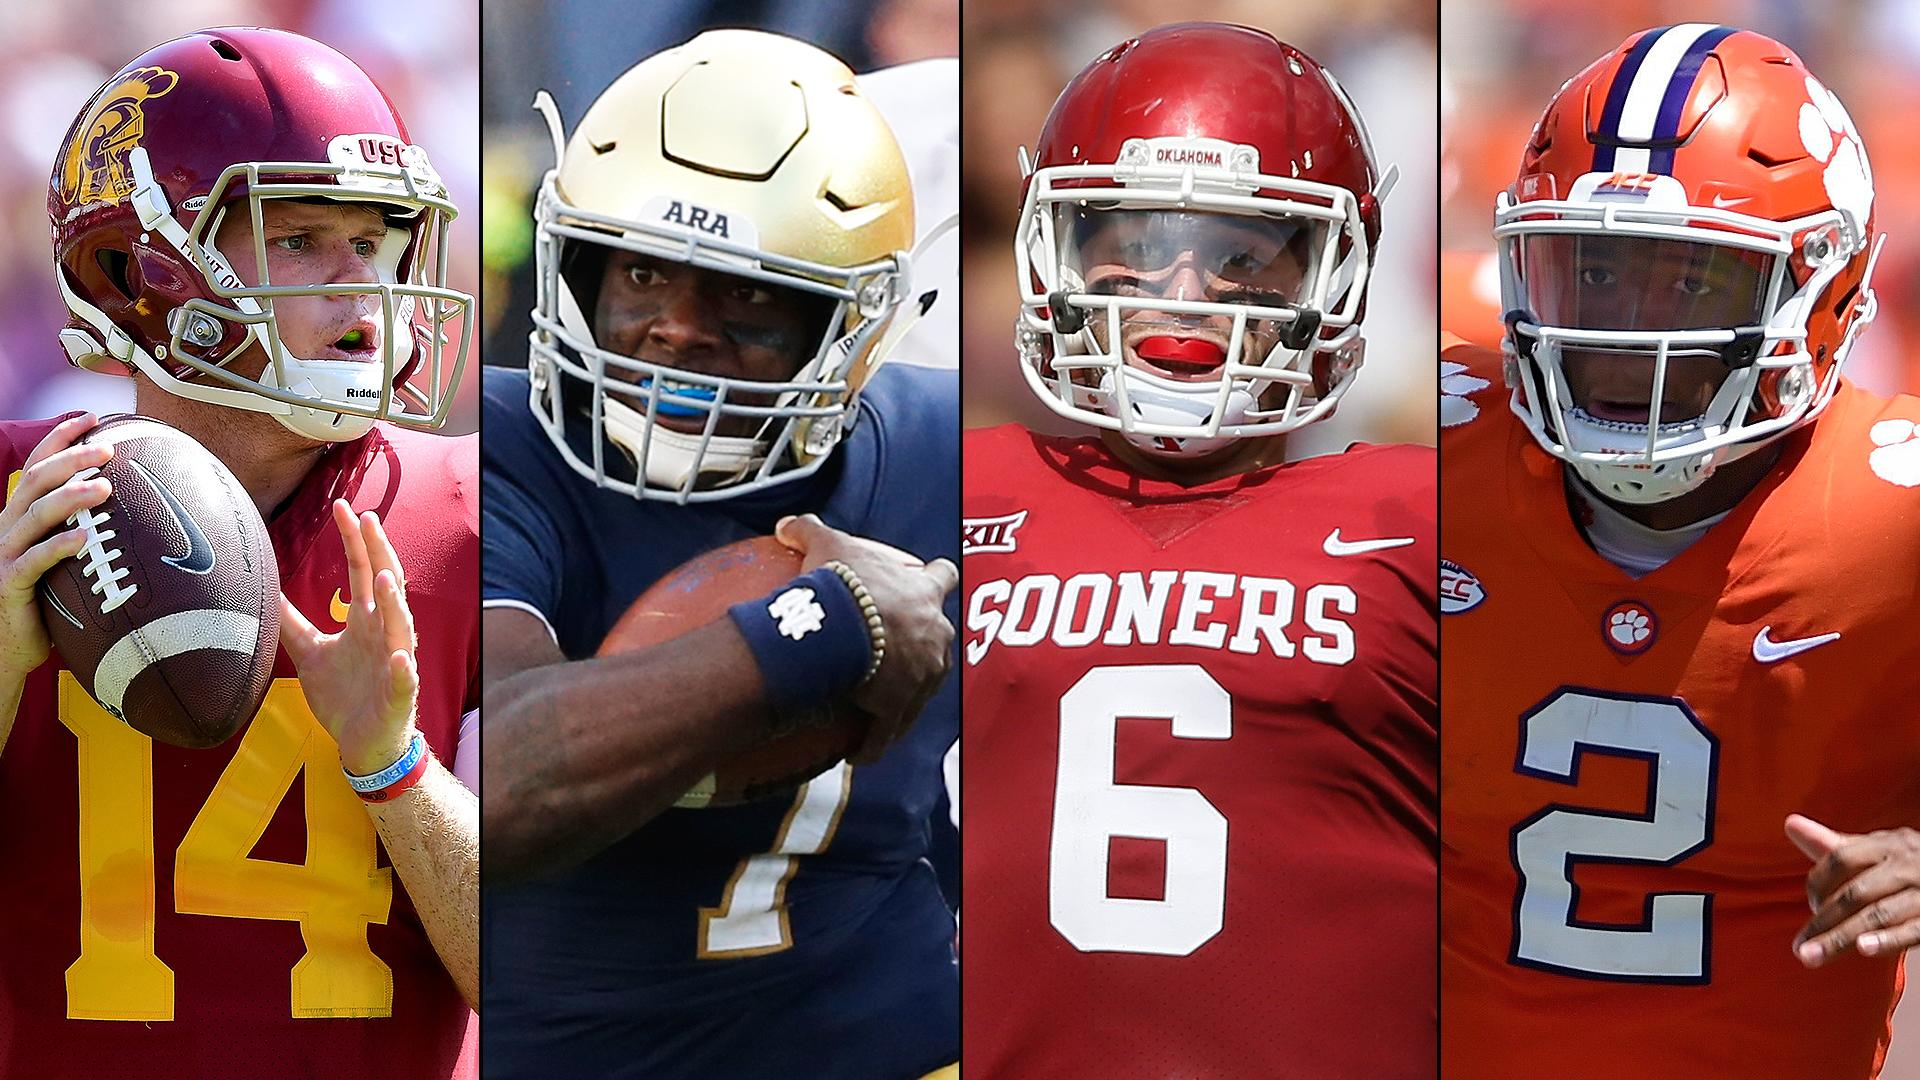 What to watch for in college football week 2 [Video]